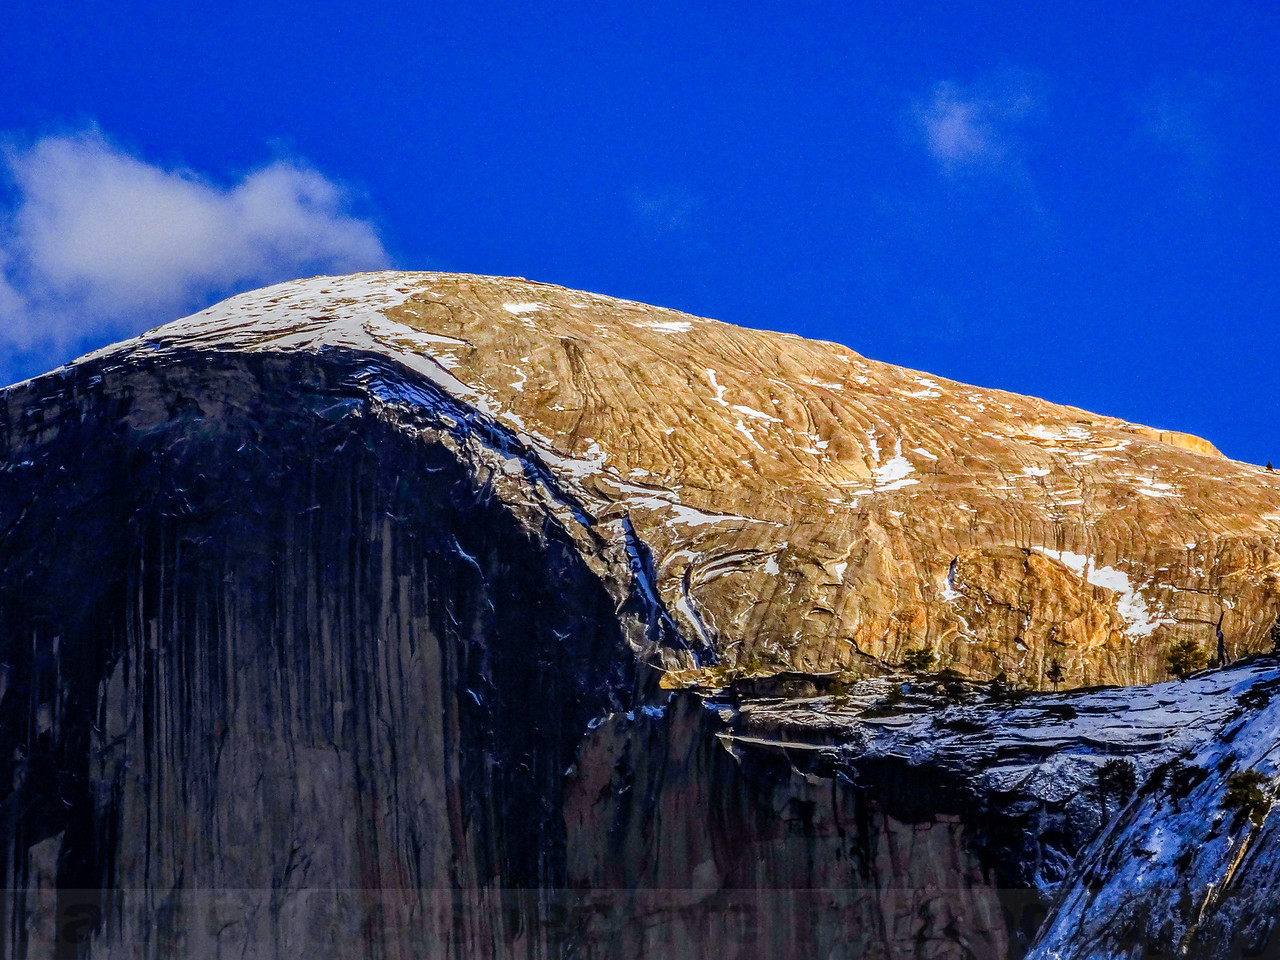 Part of Half Dome